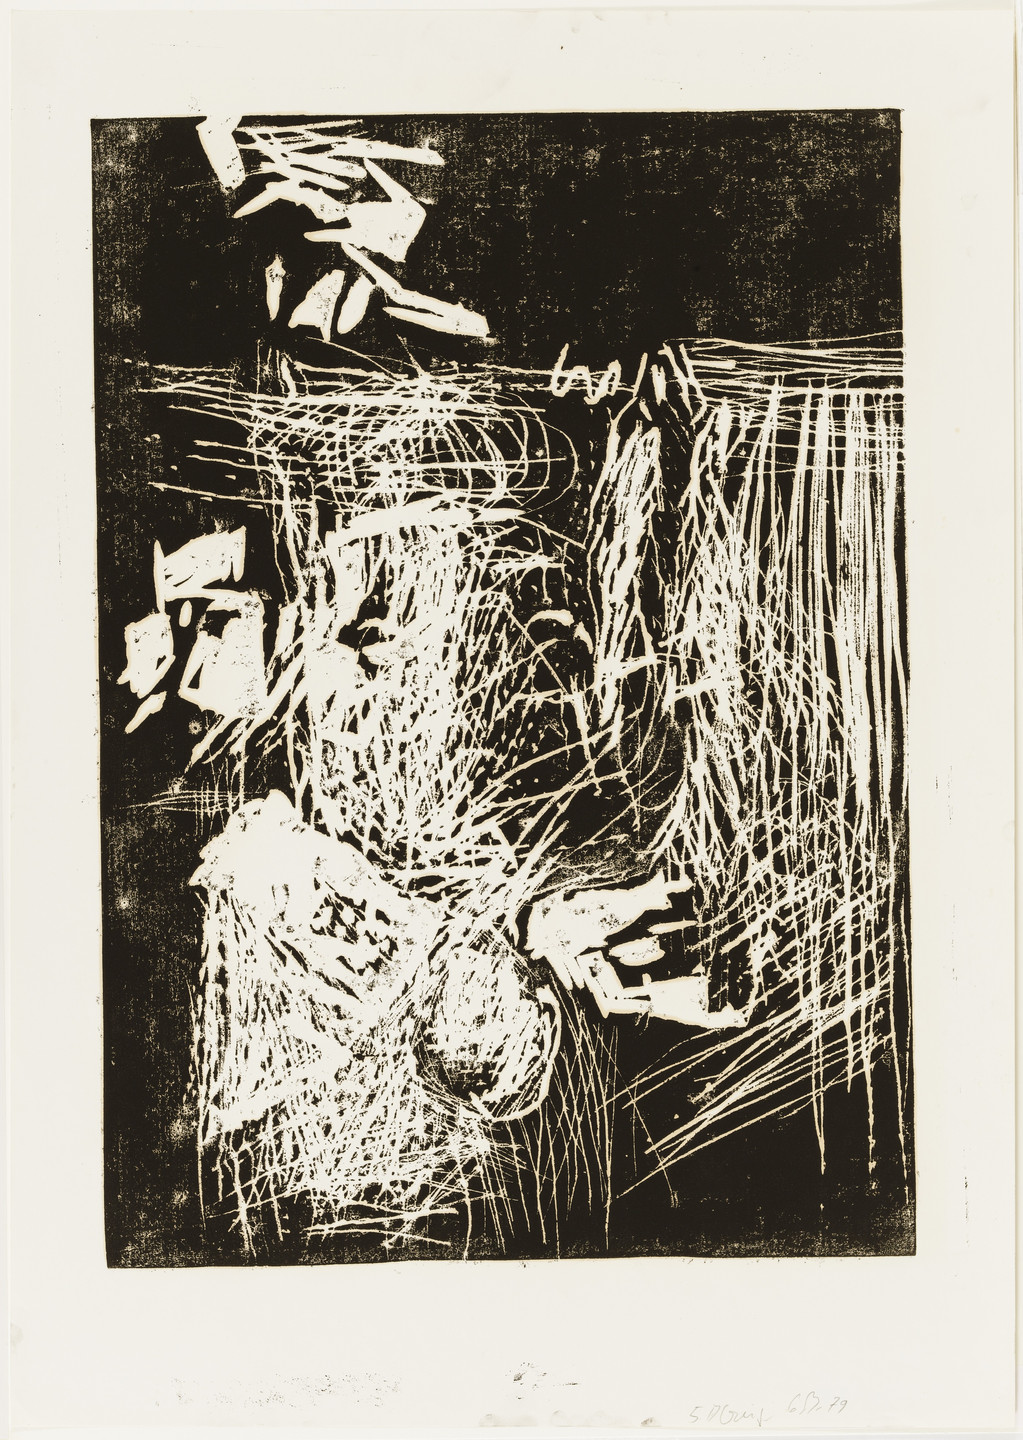 Georg Baselitz. Woman at the Window (Frau am Fenster), state V. 1979